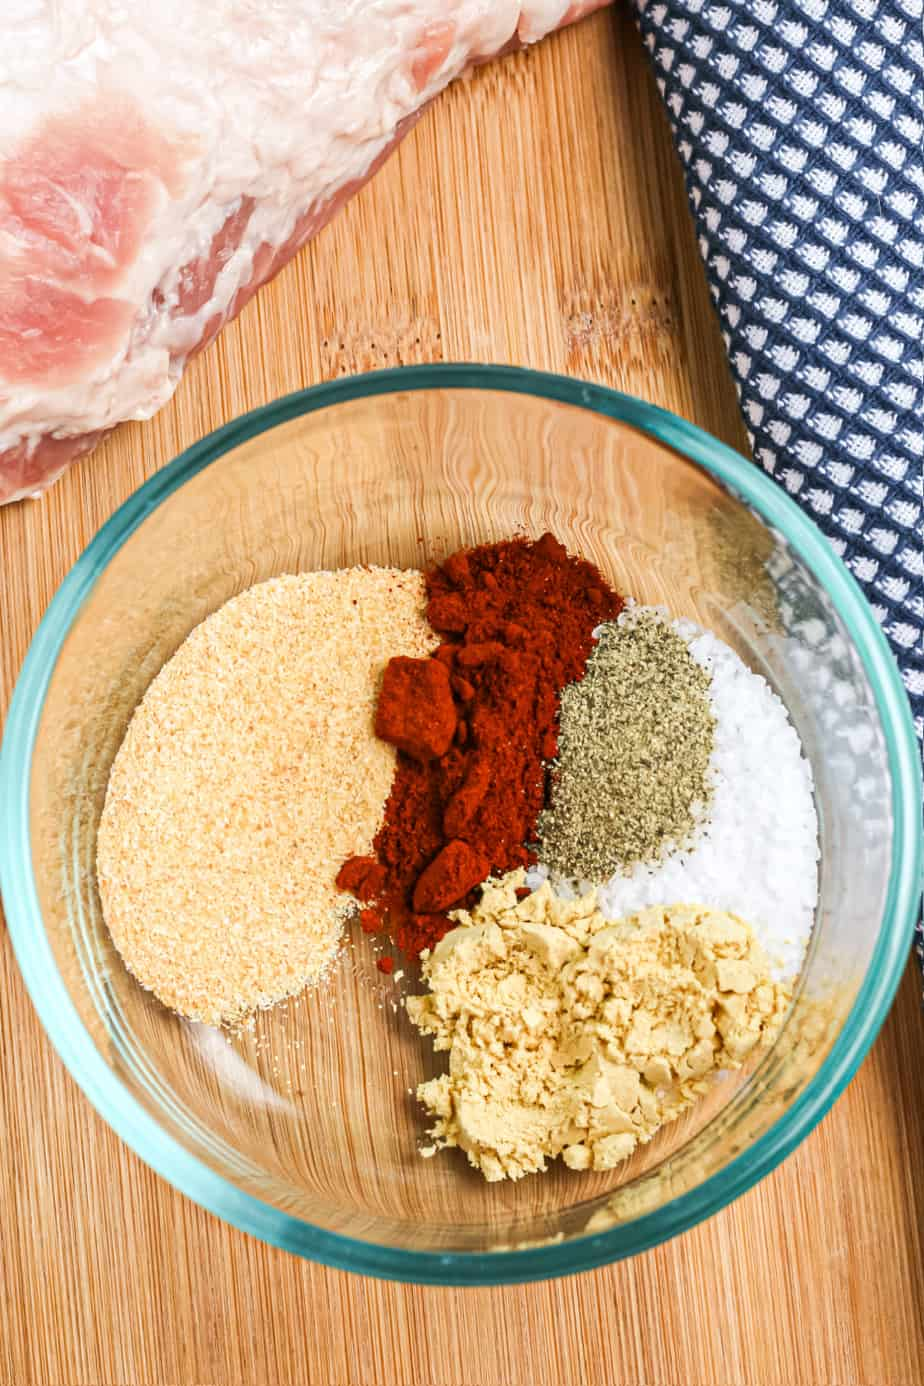 Spice rub in a bowl before mixed below a pork loin on a cutting board.